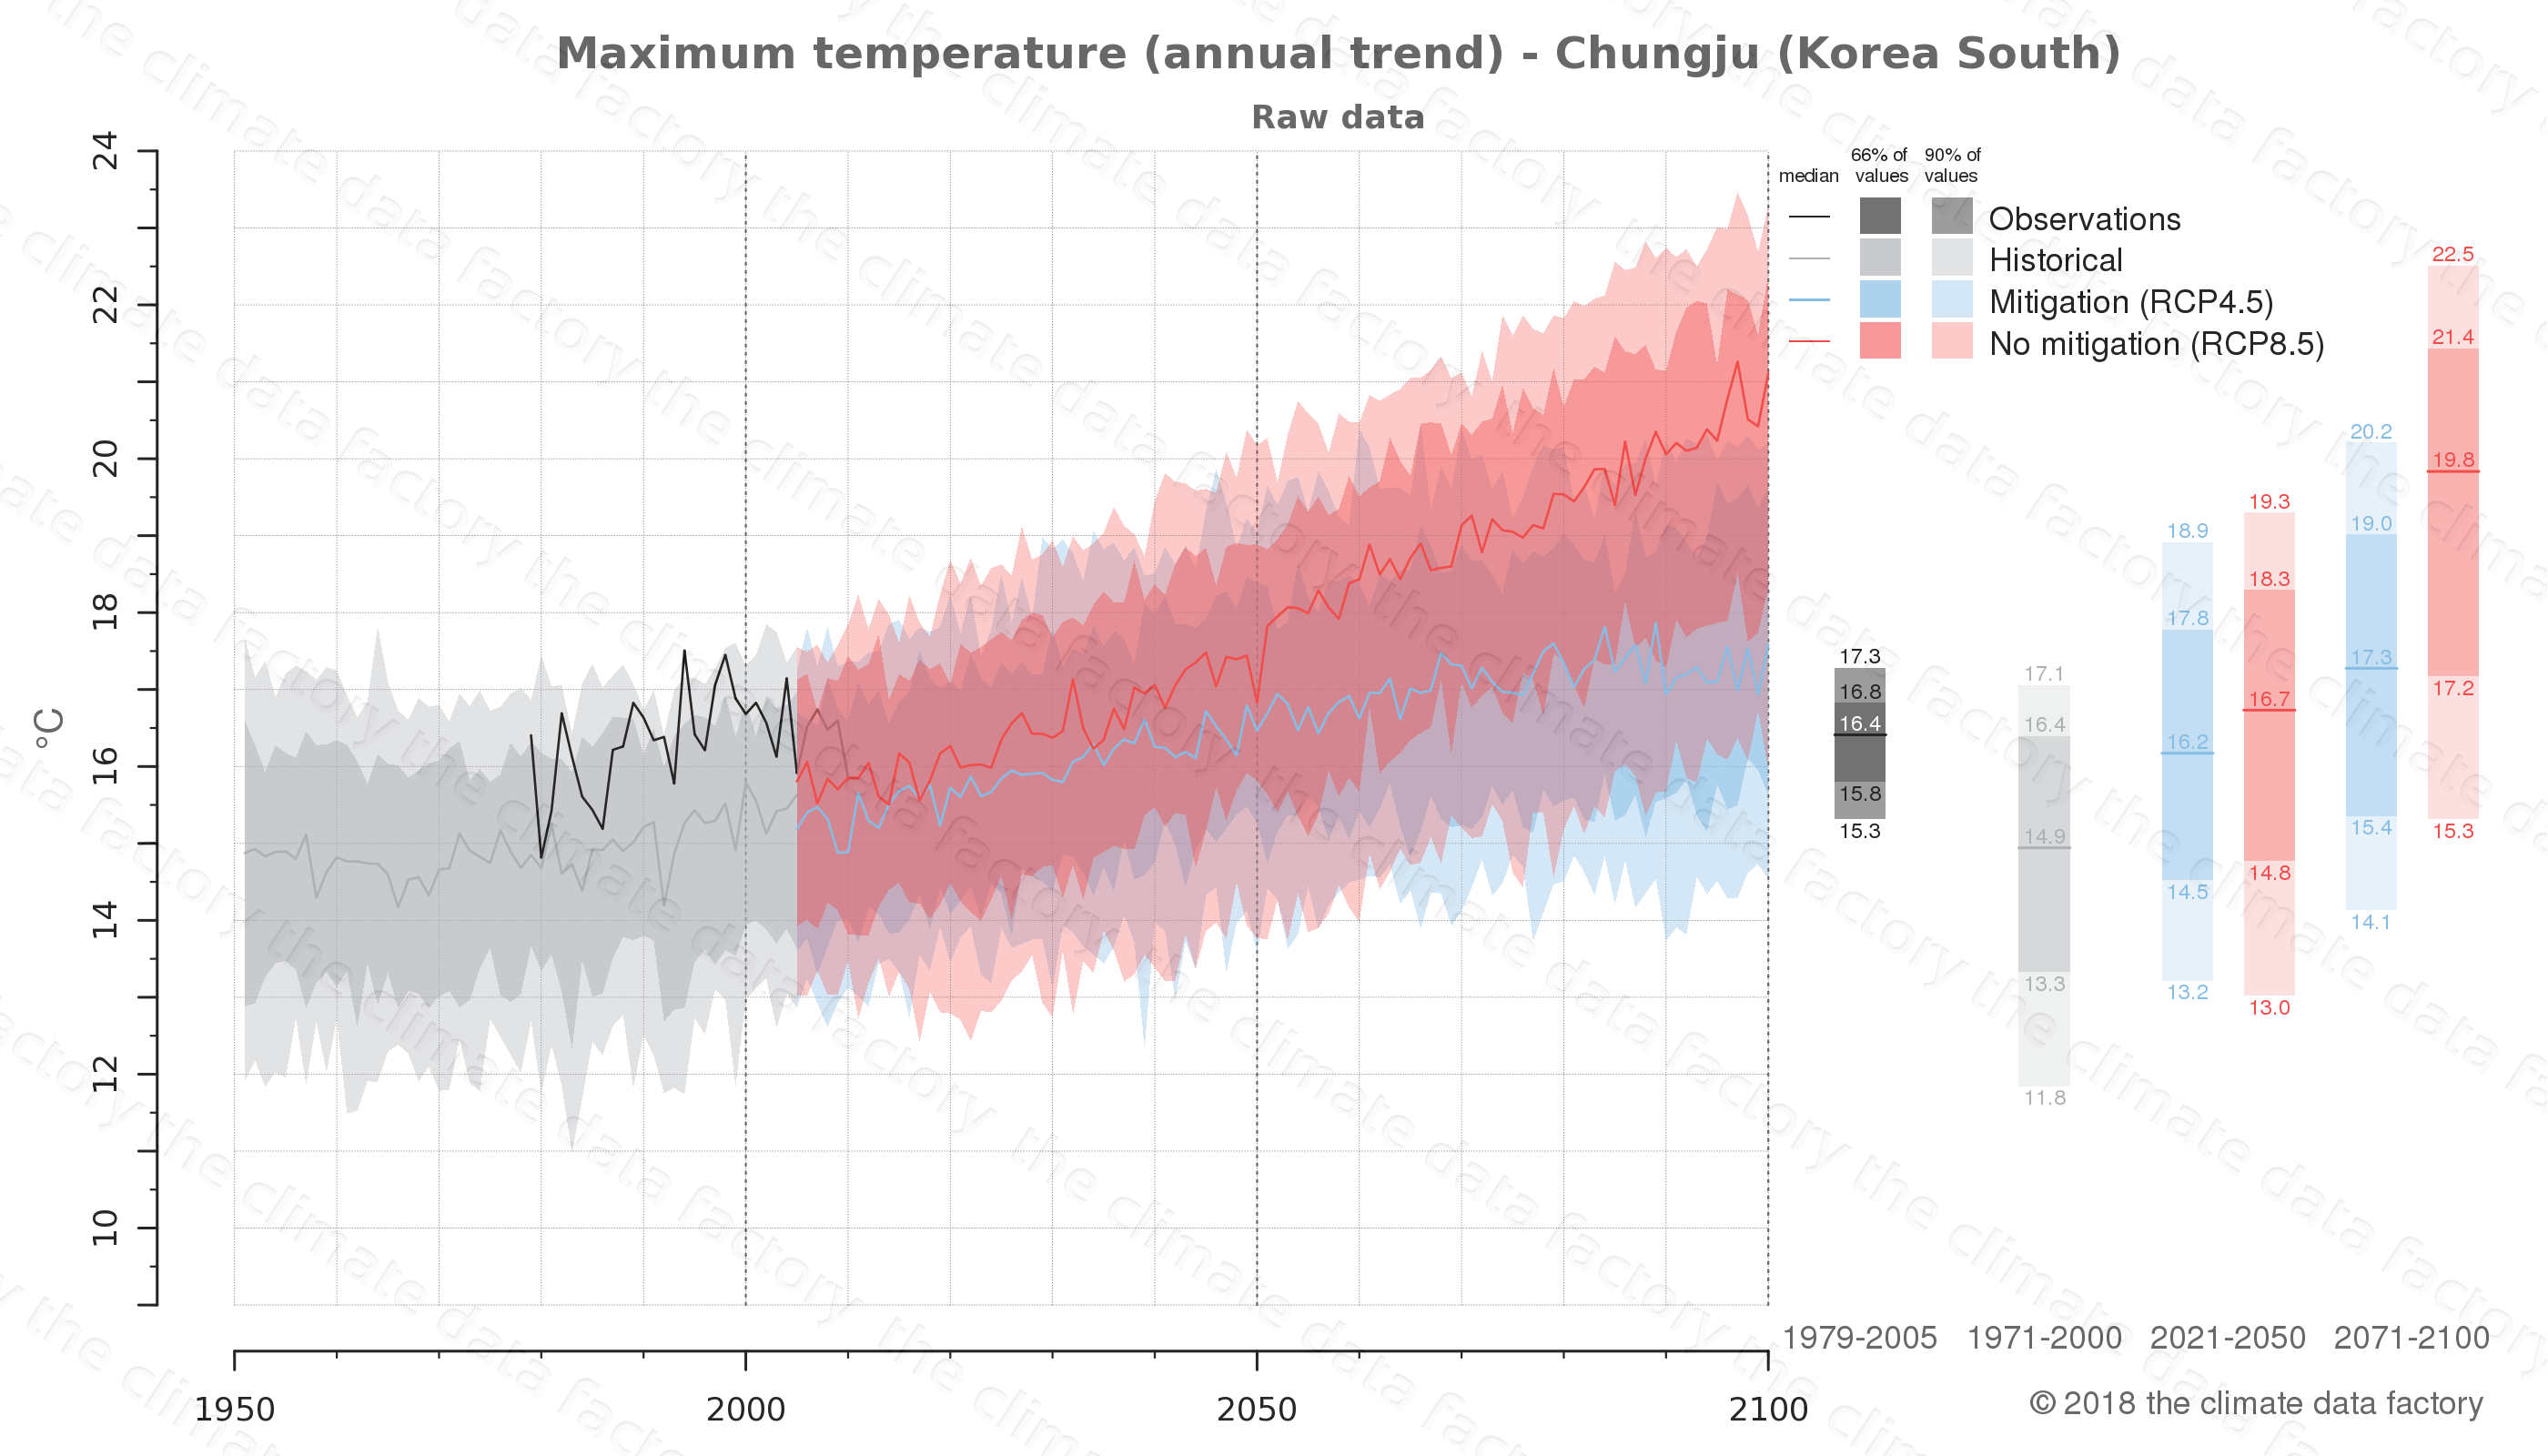 climate change data policy adaptation climate graph city data maximum-temperature chungju south korea